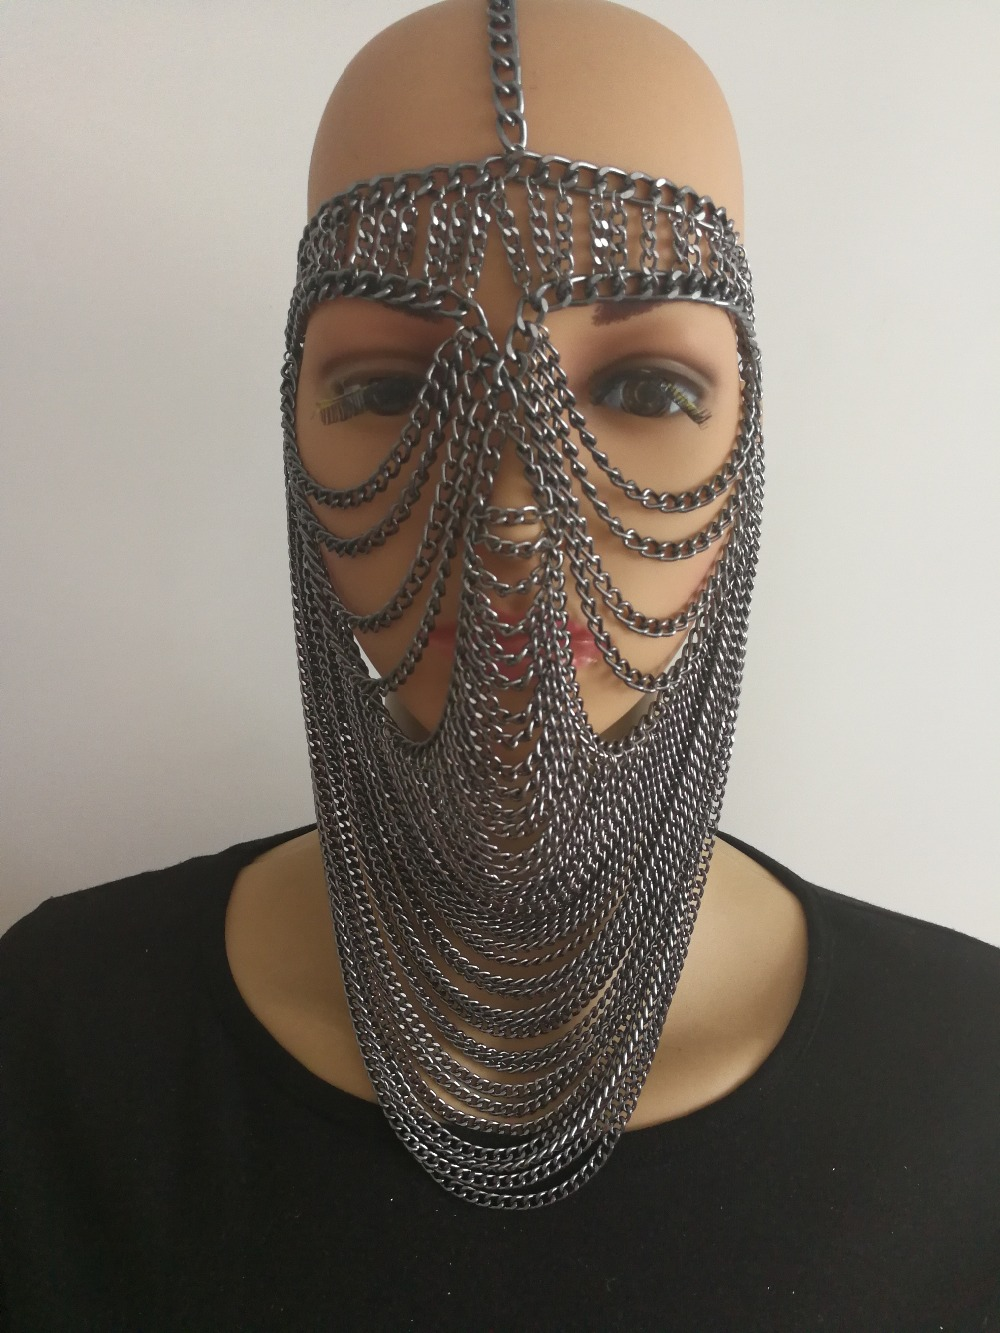 New Fashion Style WRB948 Women Harness Gray Chains Layers Mask Head Face Chains Jewelry  ...